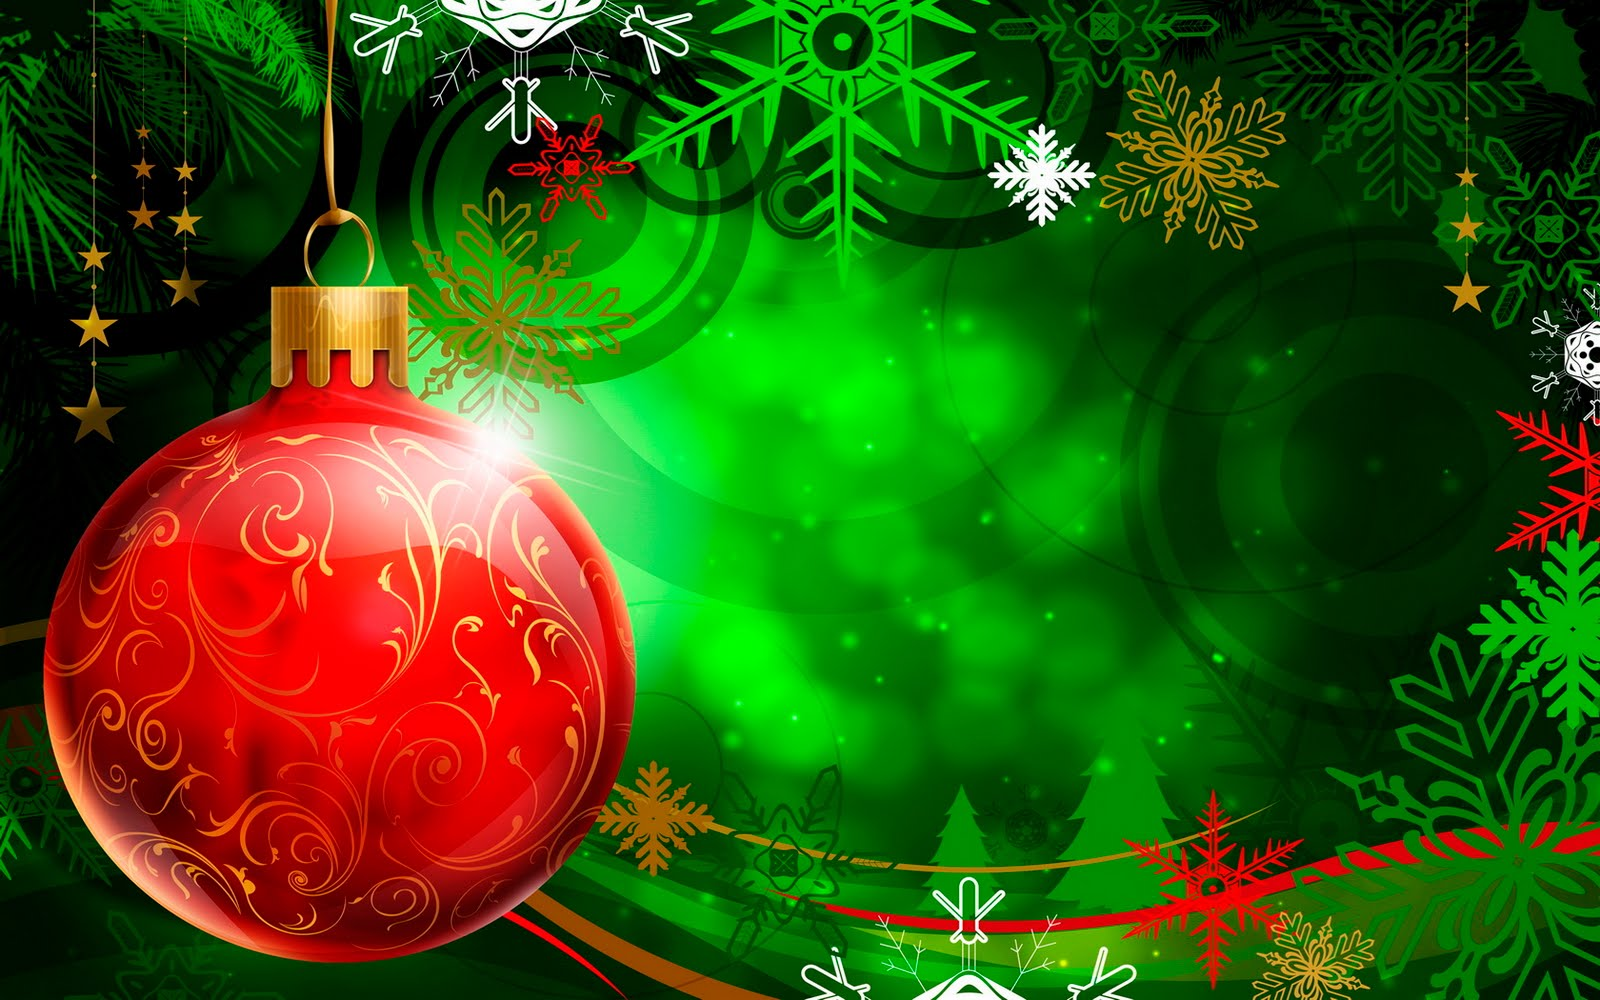 wallpaper christmas wallpapers - photo #41